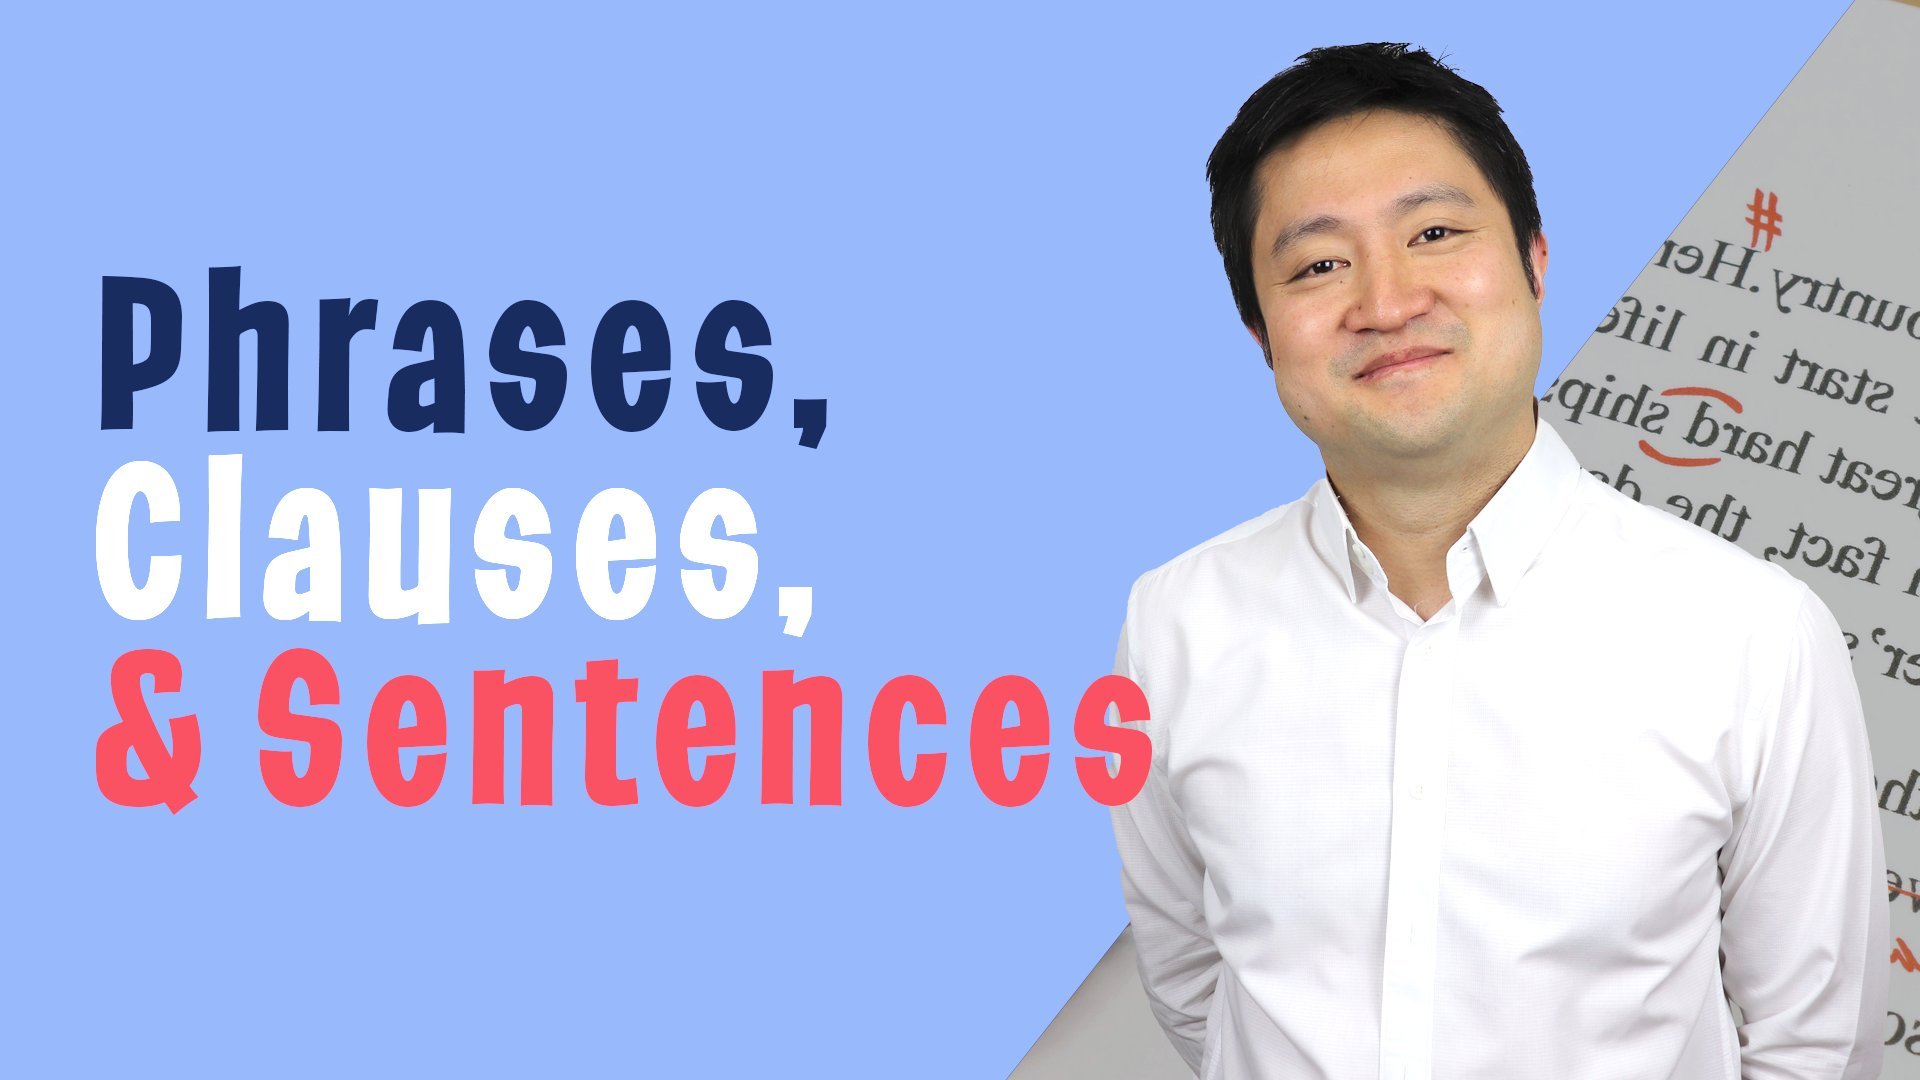 Phrases, Clauses, Sentences - Improve your English reading and writing